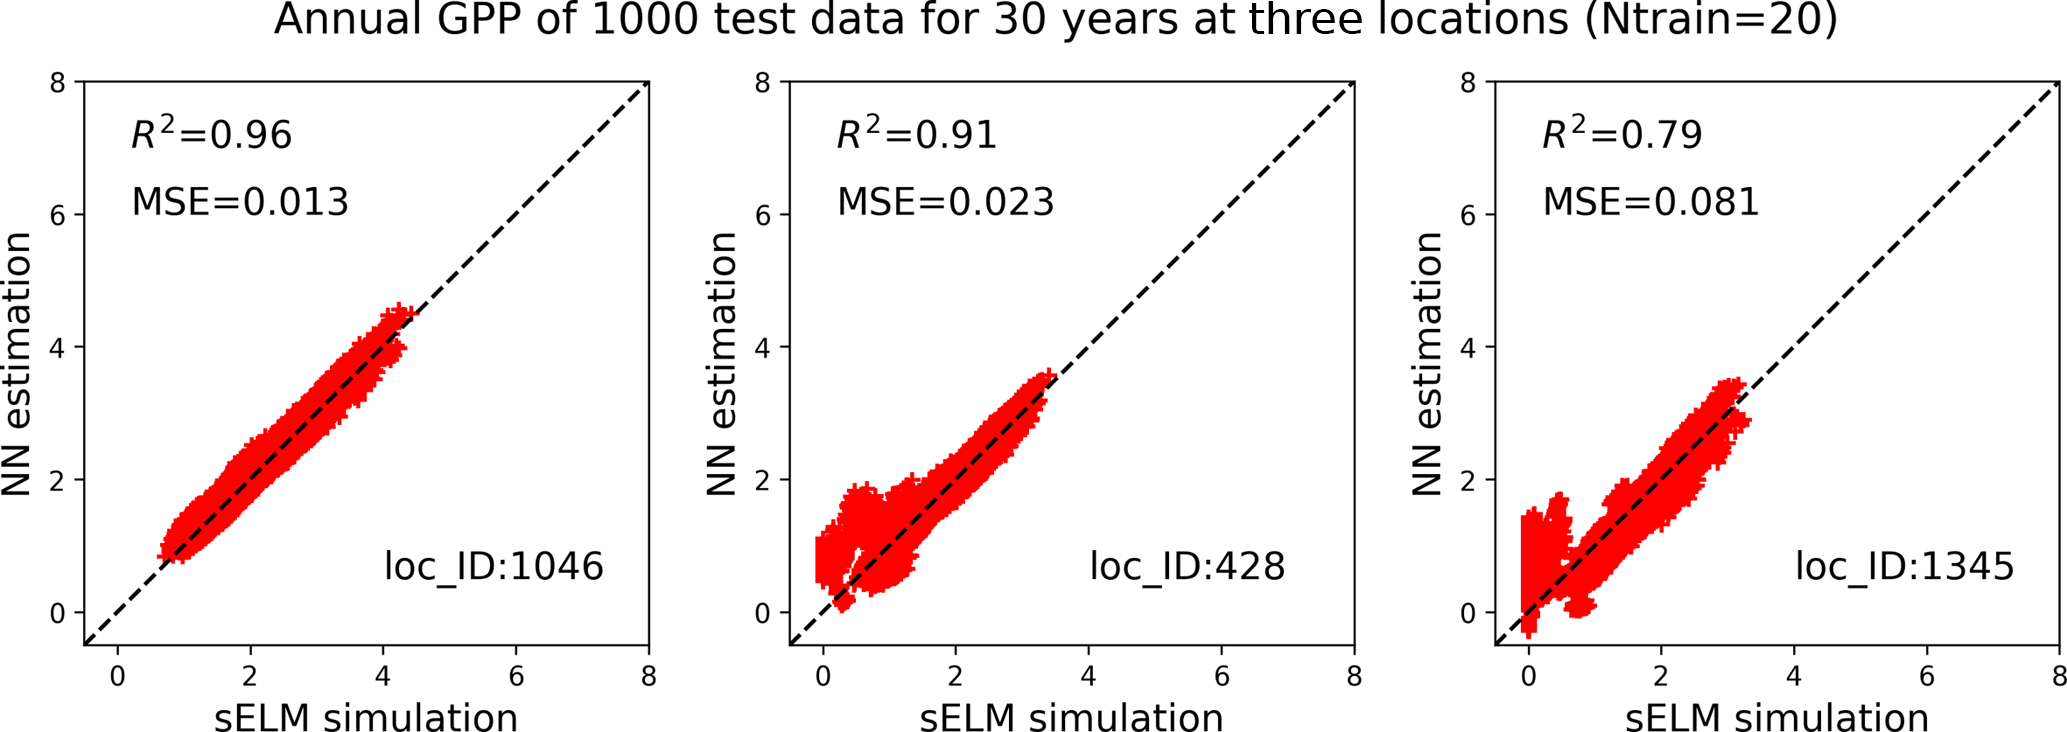 Gmd Efficient Surrogate Modeling Methods For Large Scale Earth System Models Based On Machine Learning Techniques